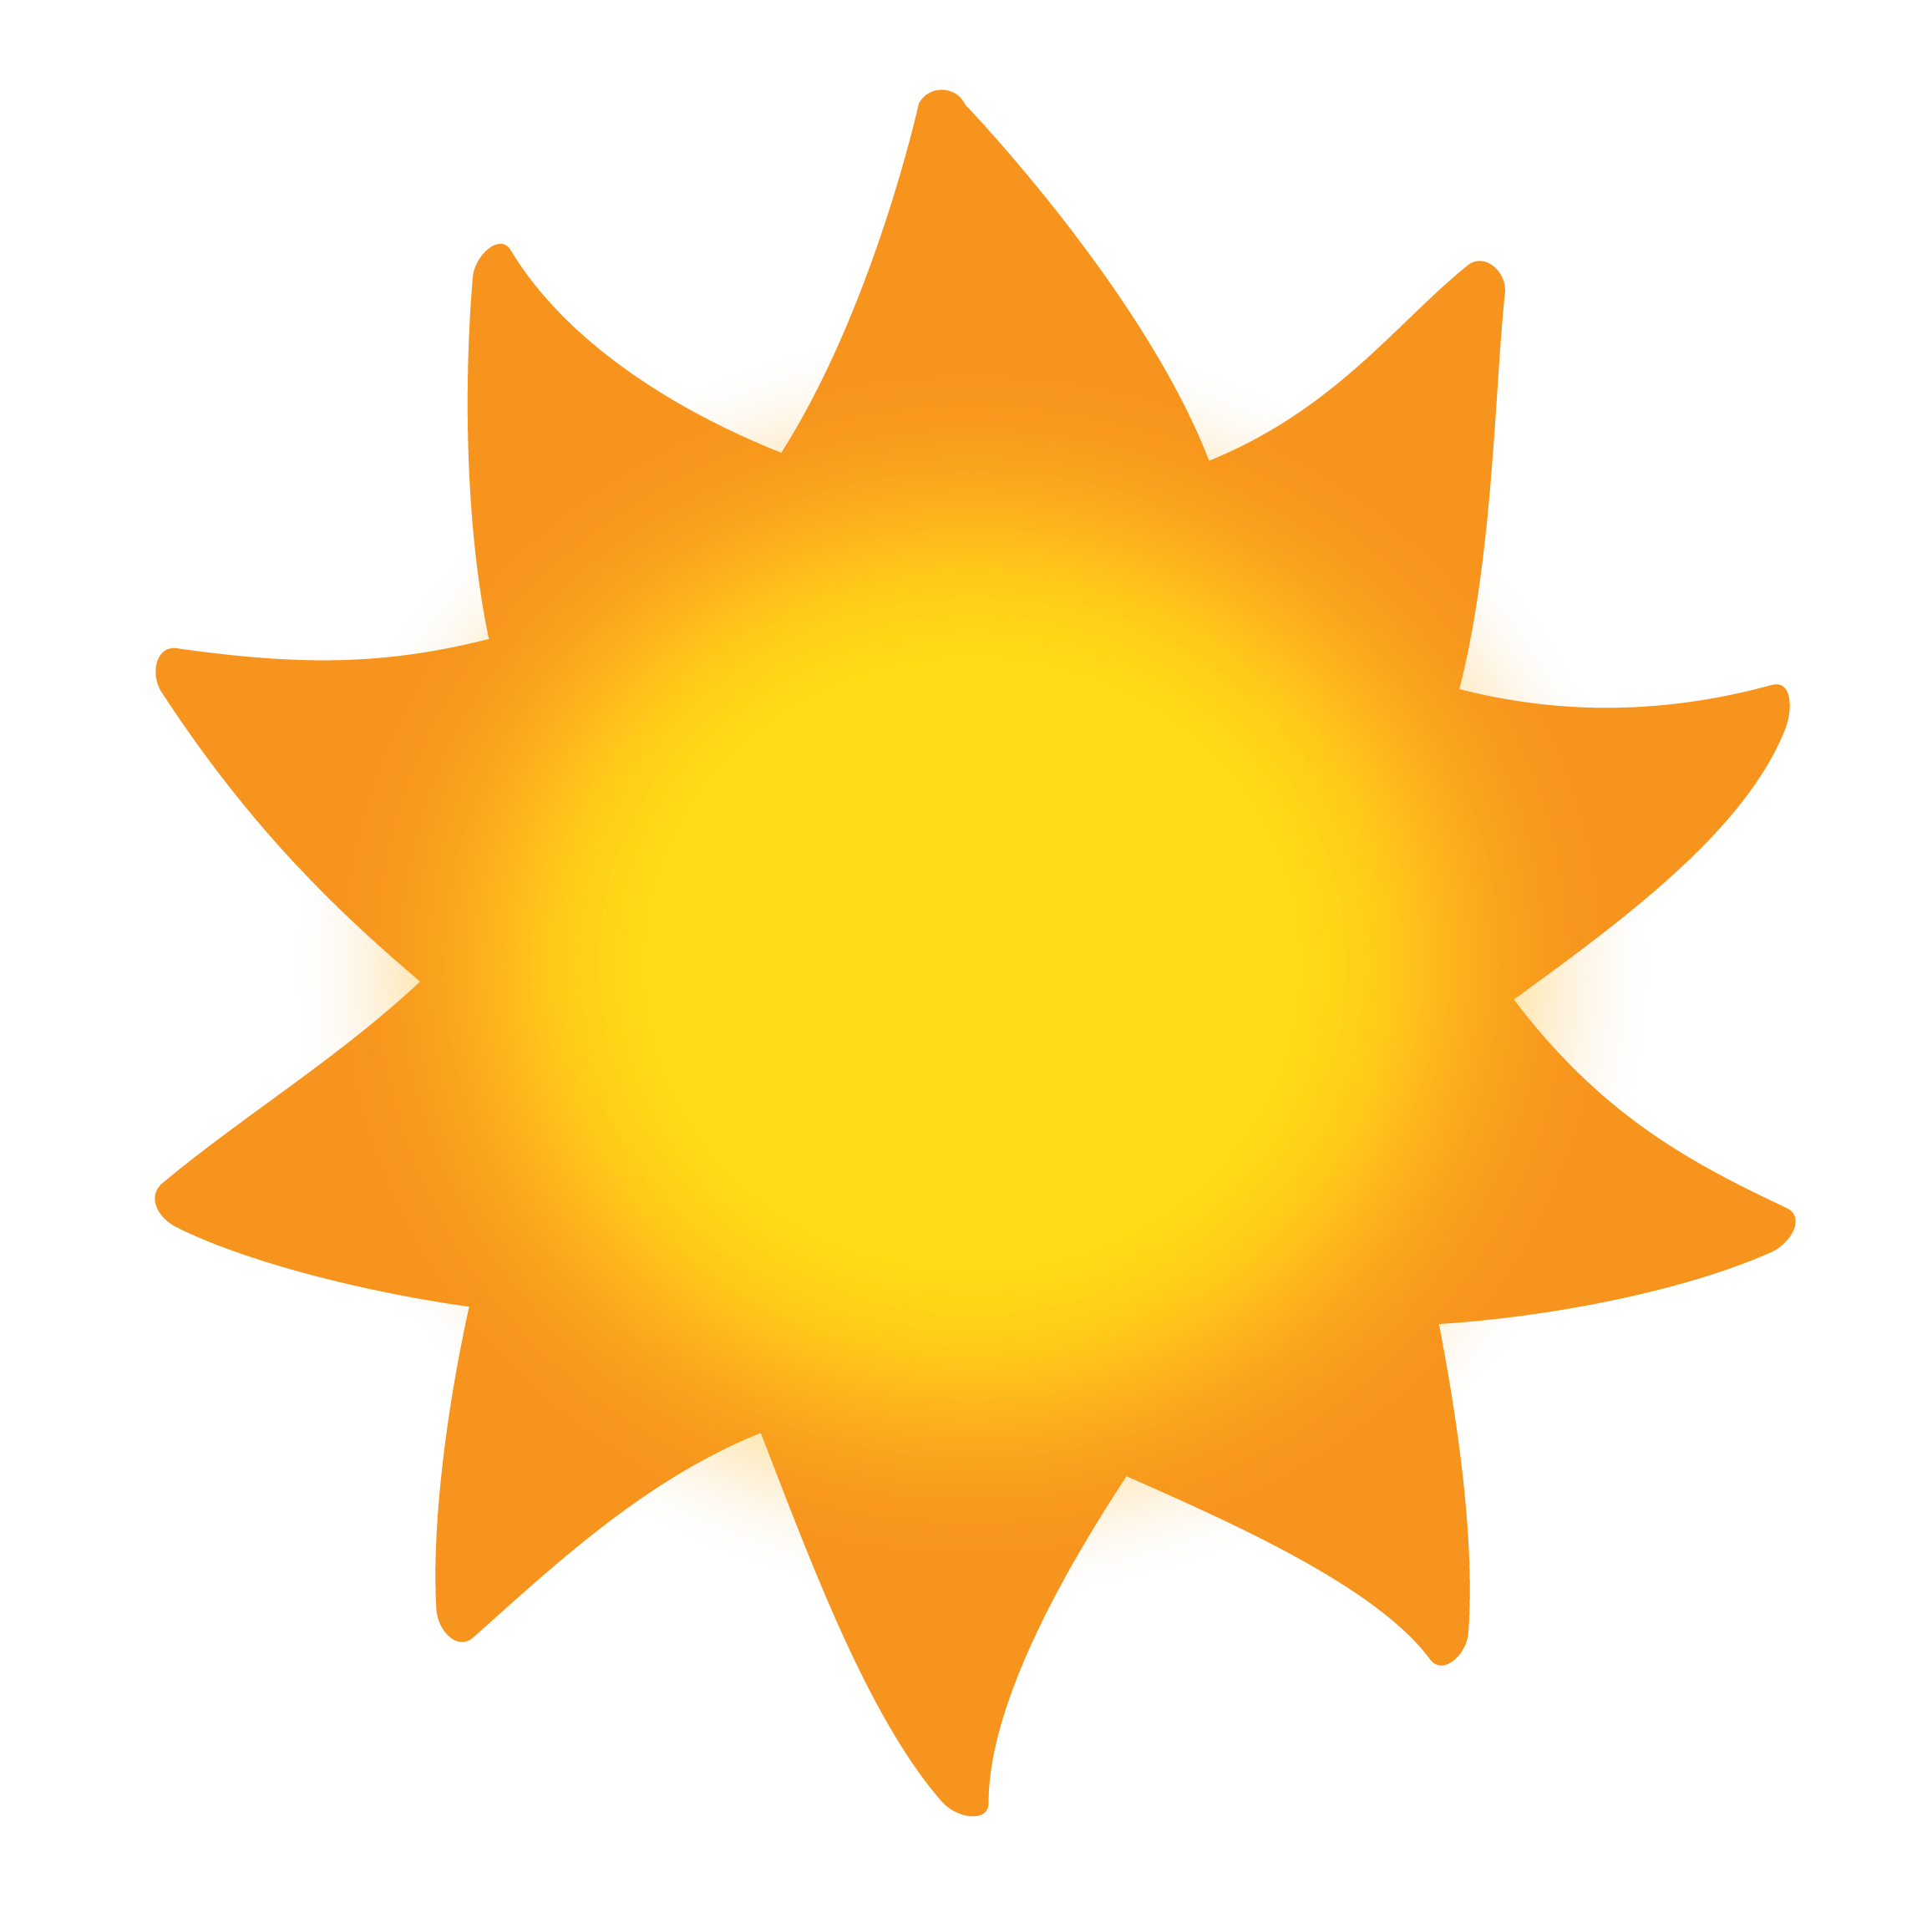 sun2.png